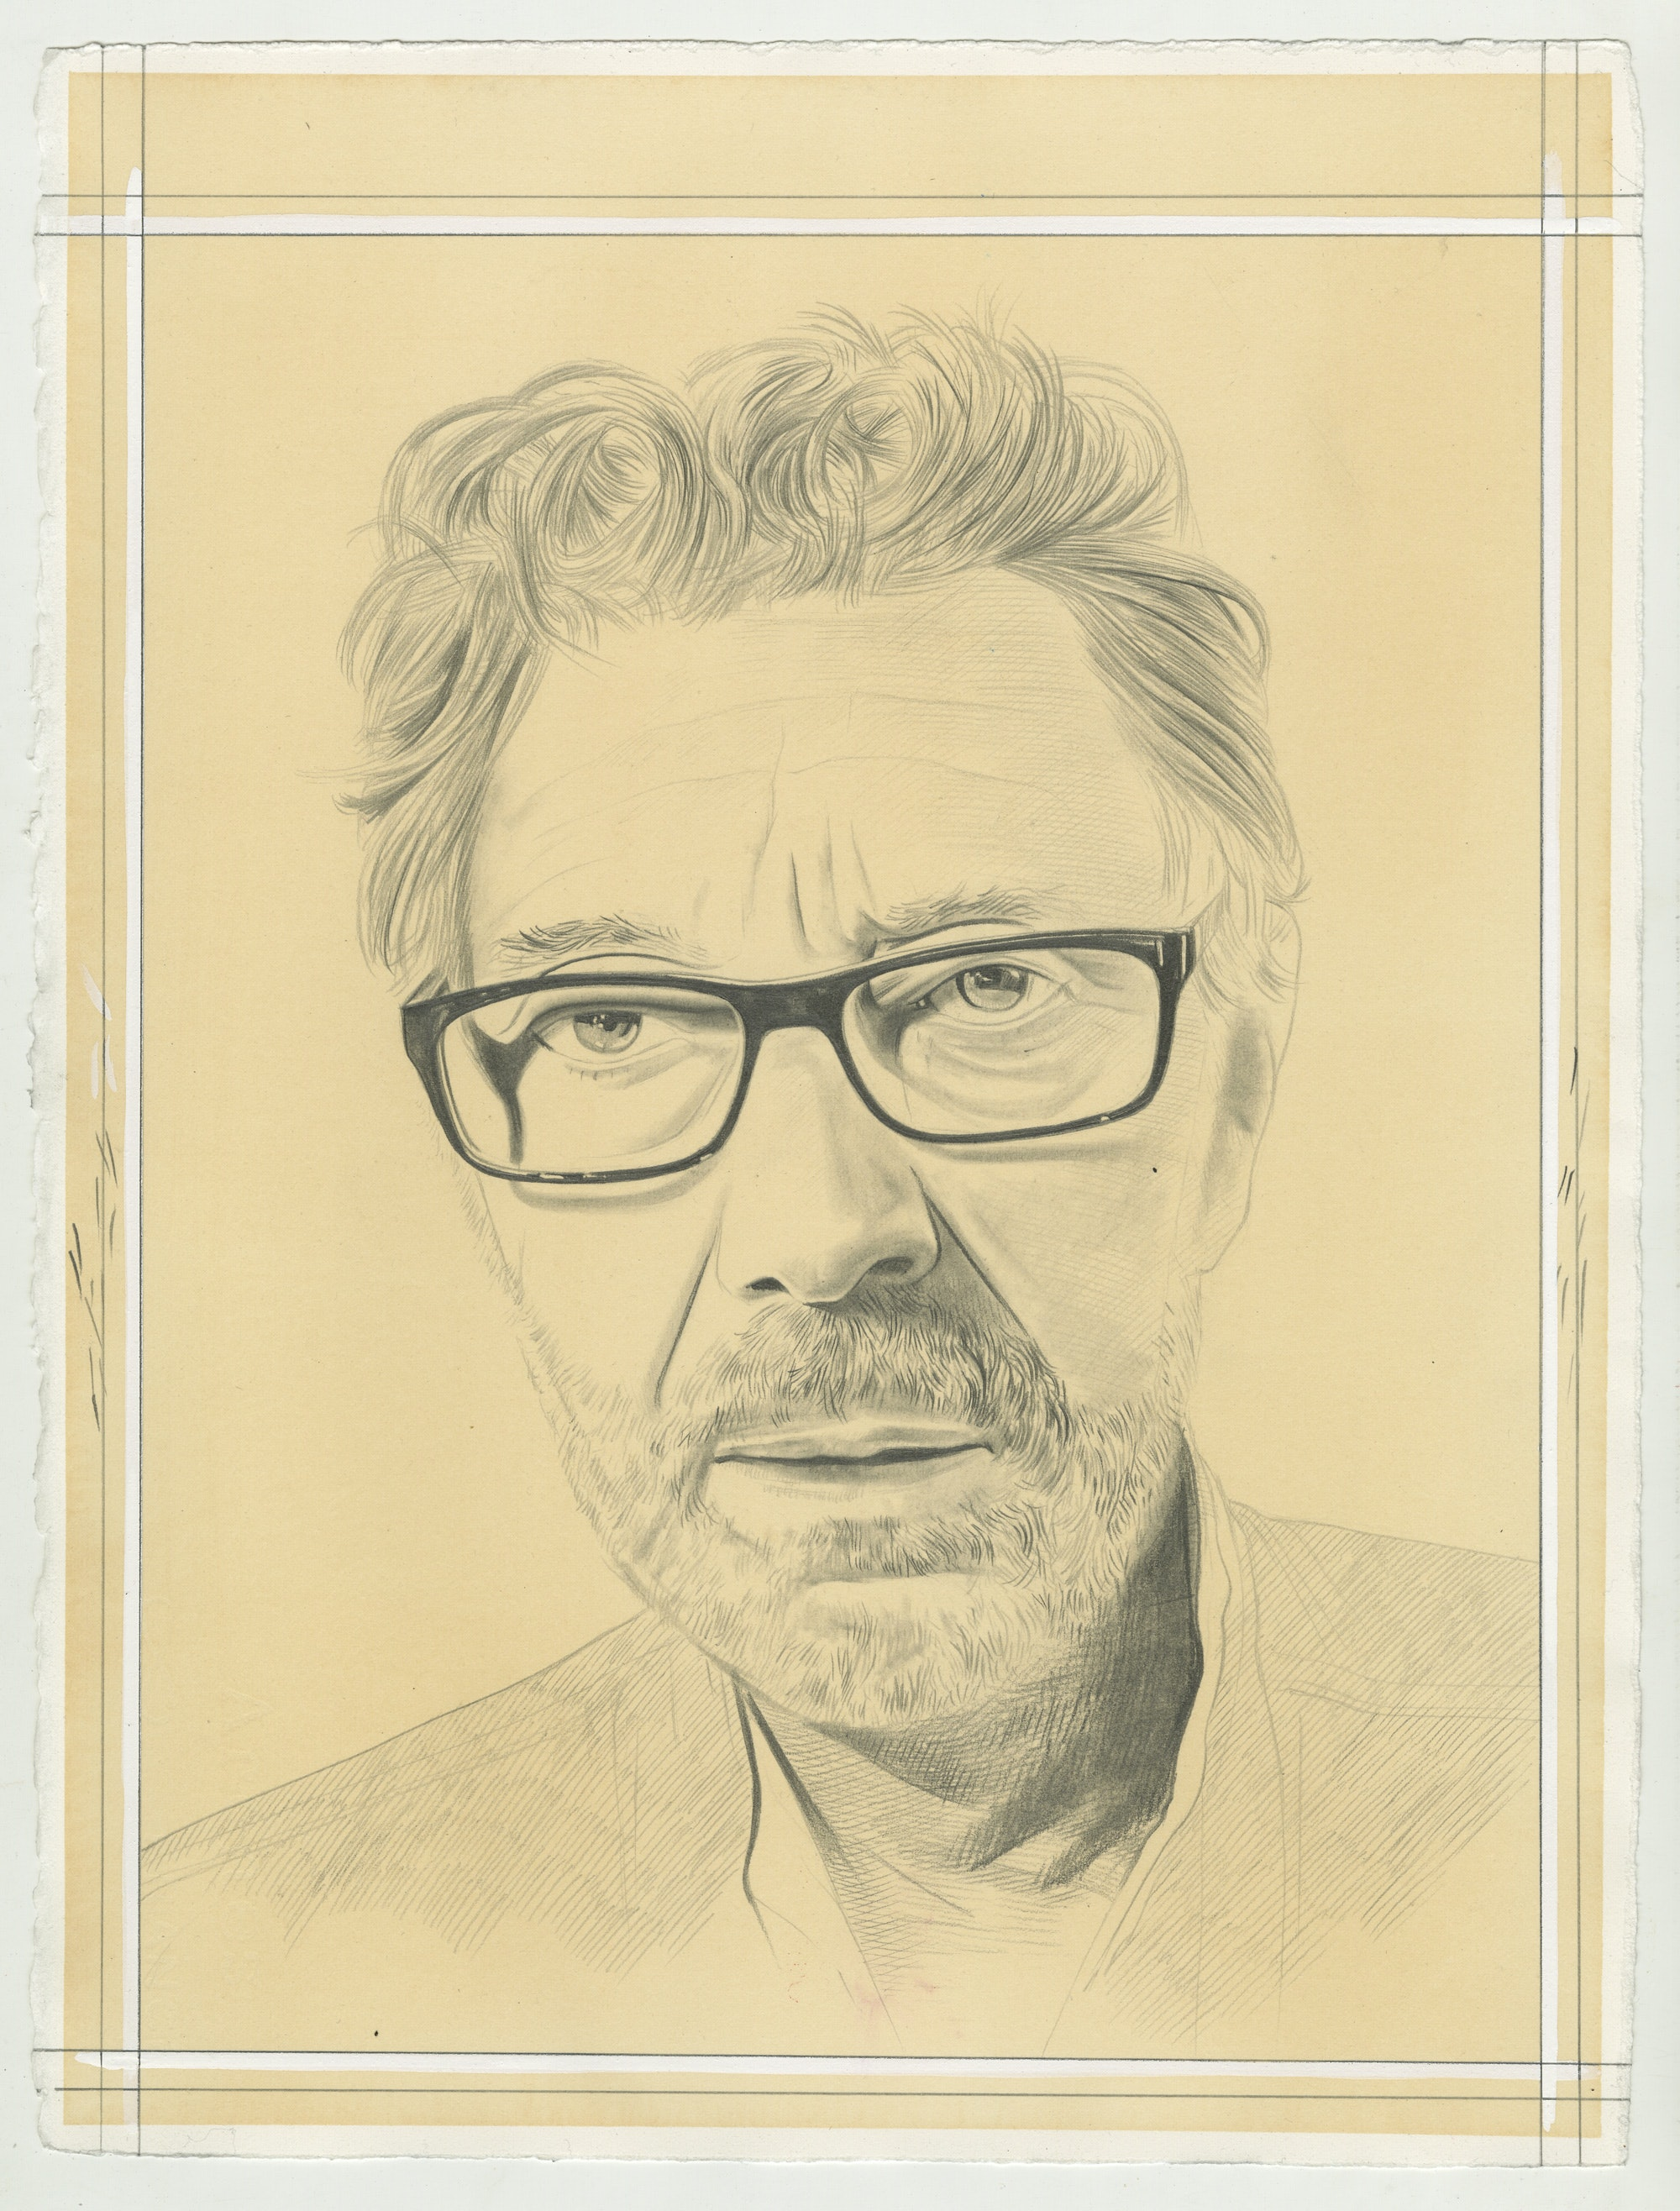 Portrait of Pierre Buraglio. Pencil on Paper by Phong Bui.